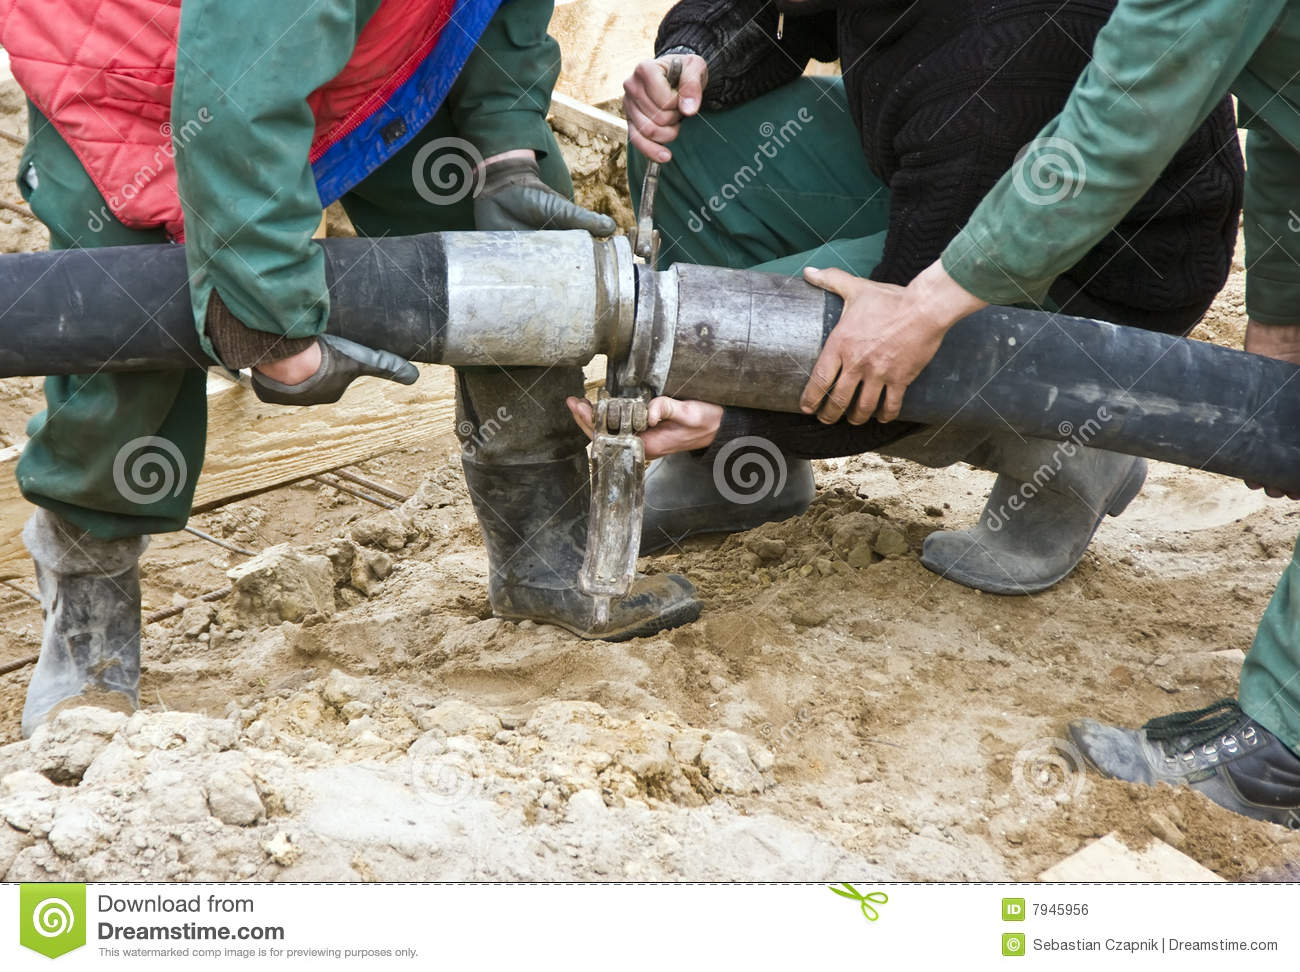 Concrete hose stock photo  Image of boots, filling, home - 7945956